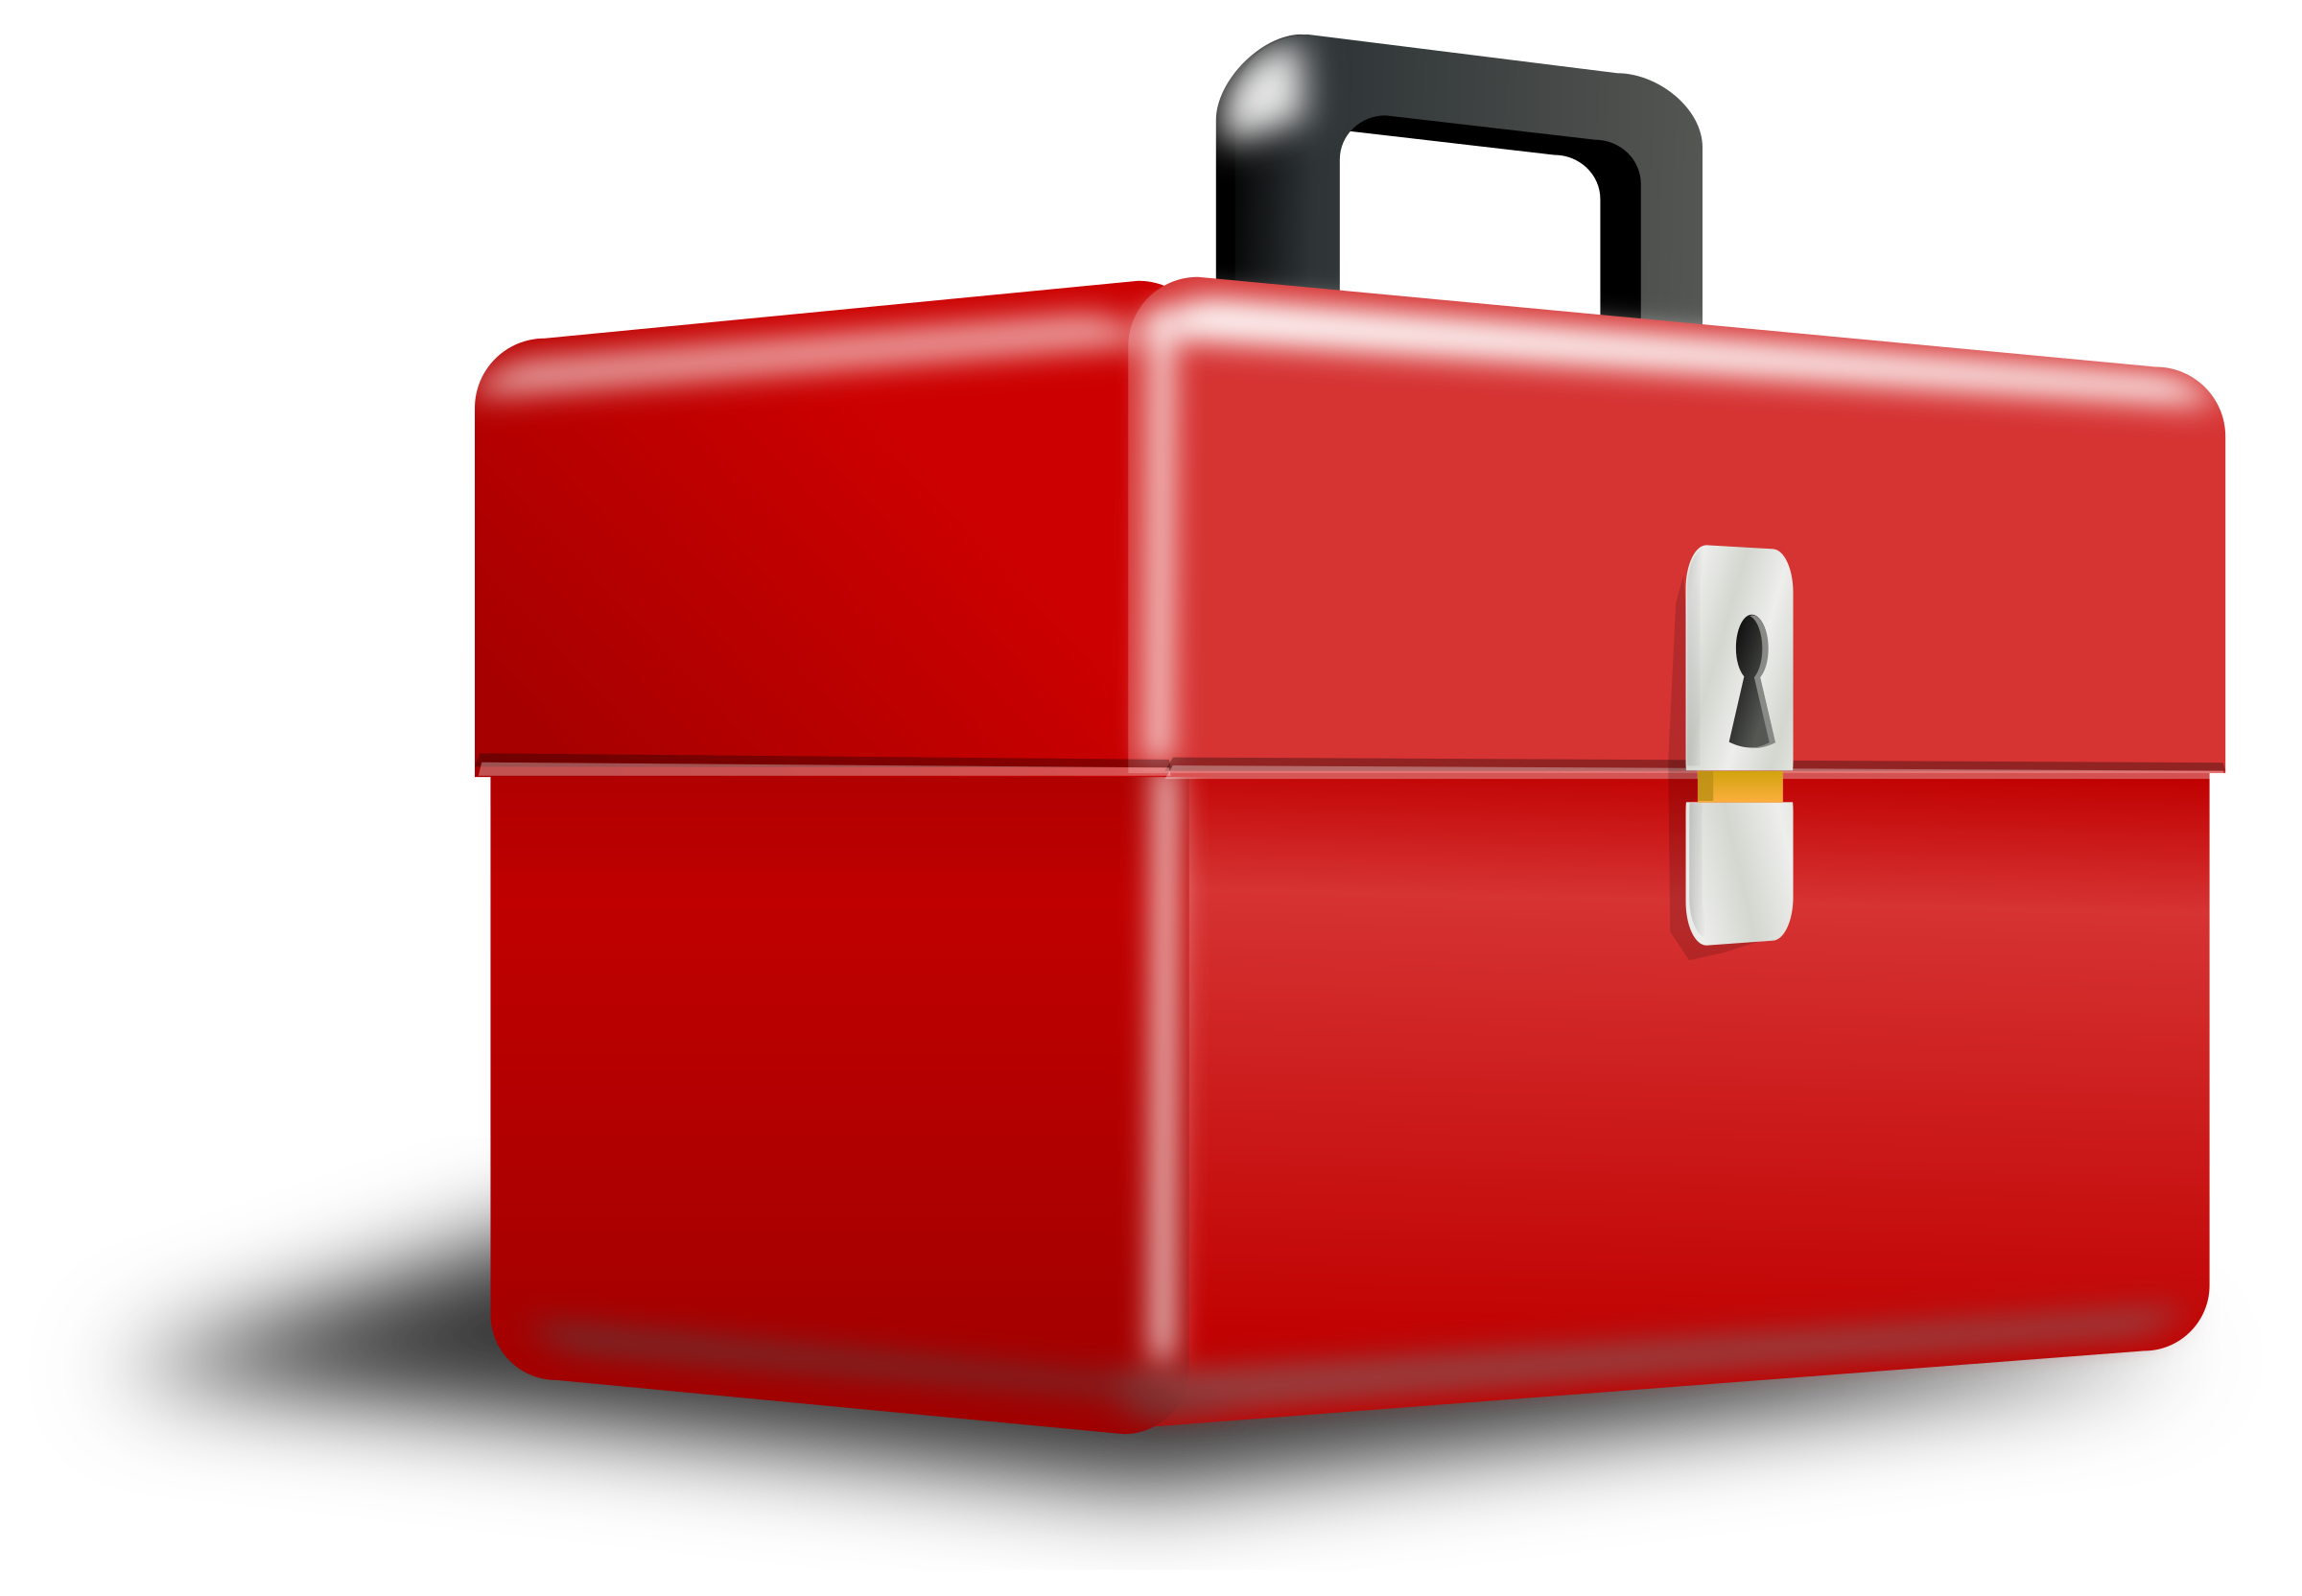 Luggage clipart red. Metallic box with perspective